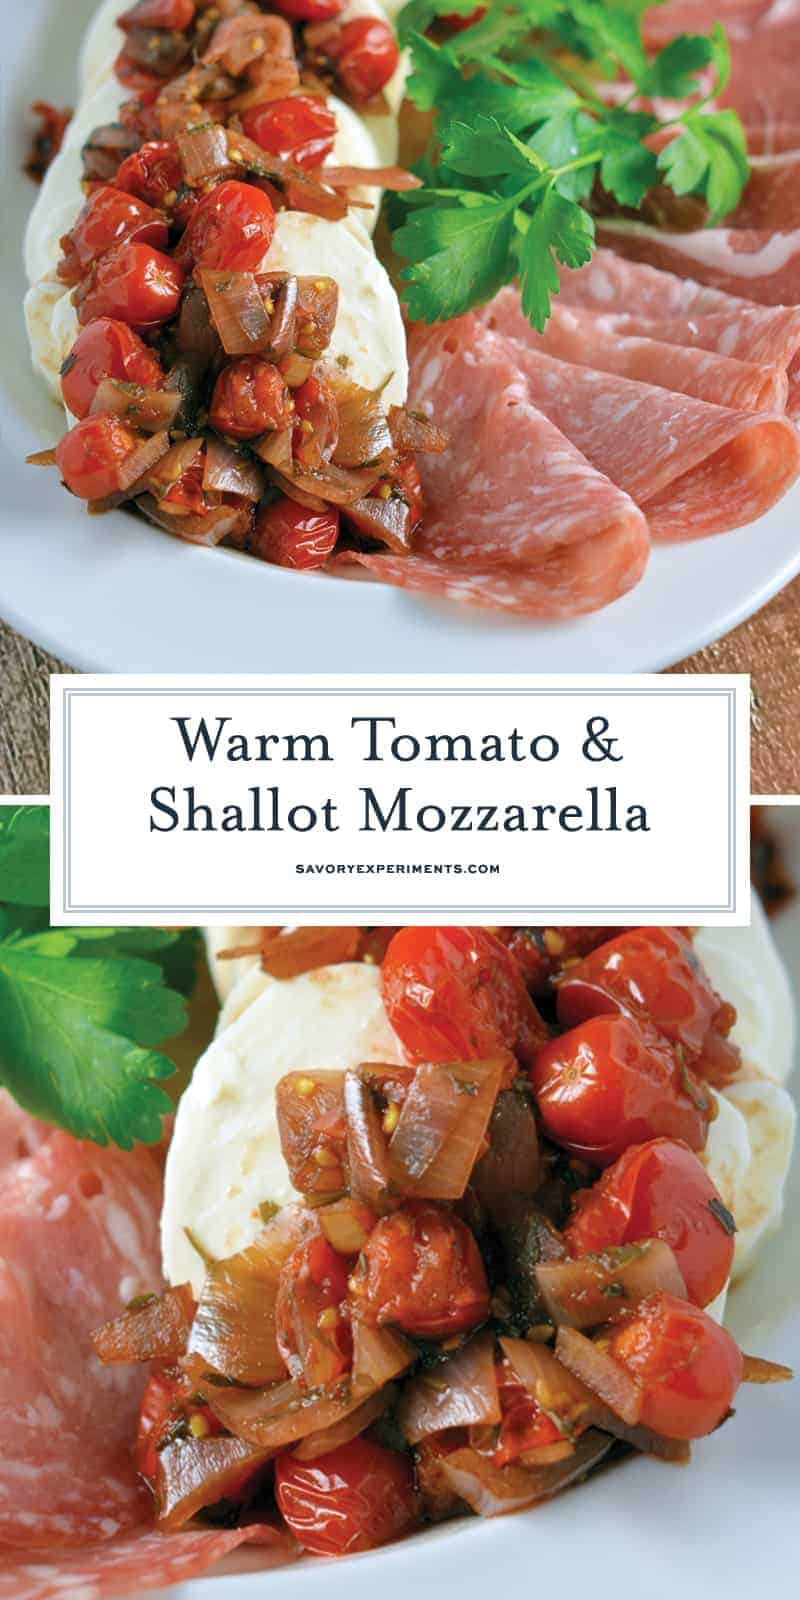 What is the best type of appetizer? One that only uses 6 ingredients and is ready in 20 minutes, like Warm Tomato and Shallot Mozzarella Cheese! #easyappetizers #mozzarellaappetizers #makeaheadappetizers www.savoryexperiments.com